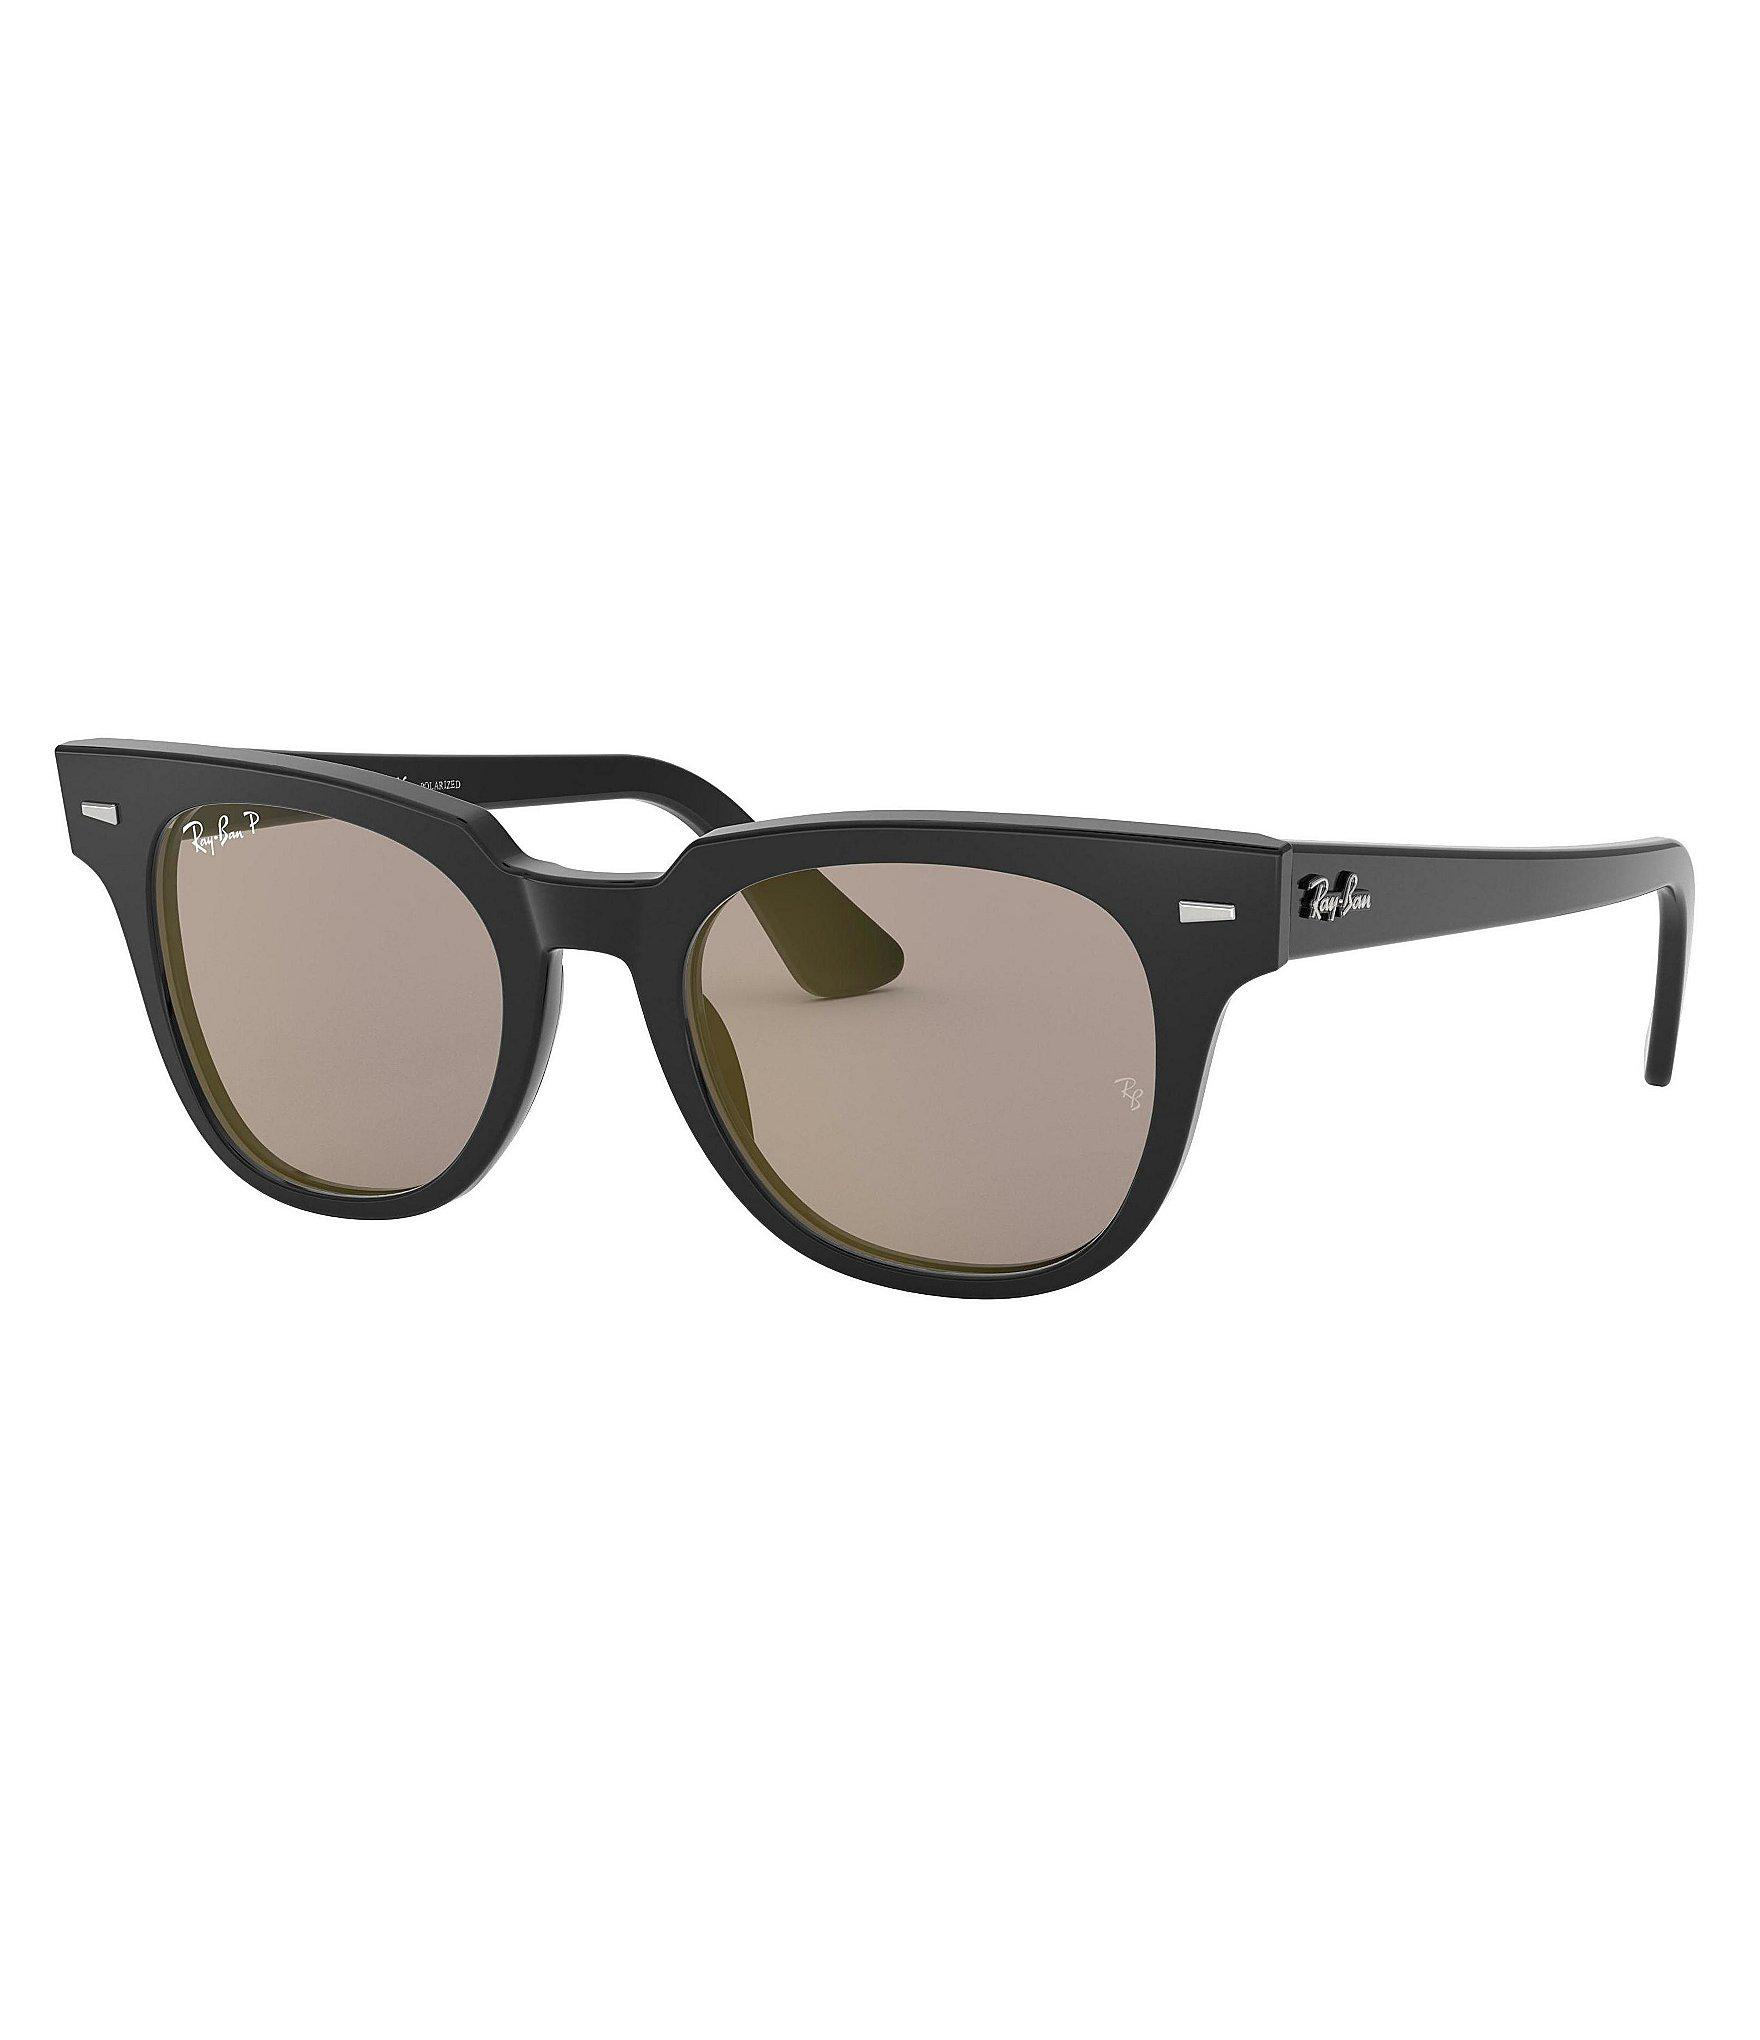 f2274e1a86 Lyst - Ray-Ban Meteor Classic Polarized Sunglasses in Black for Men